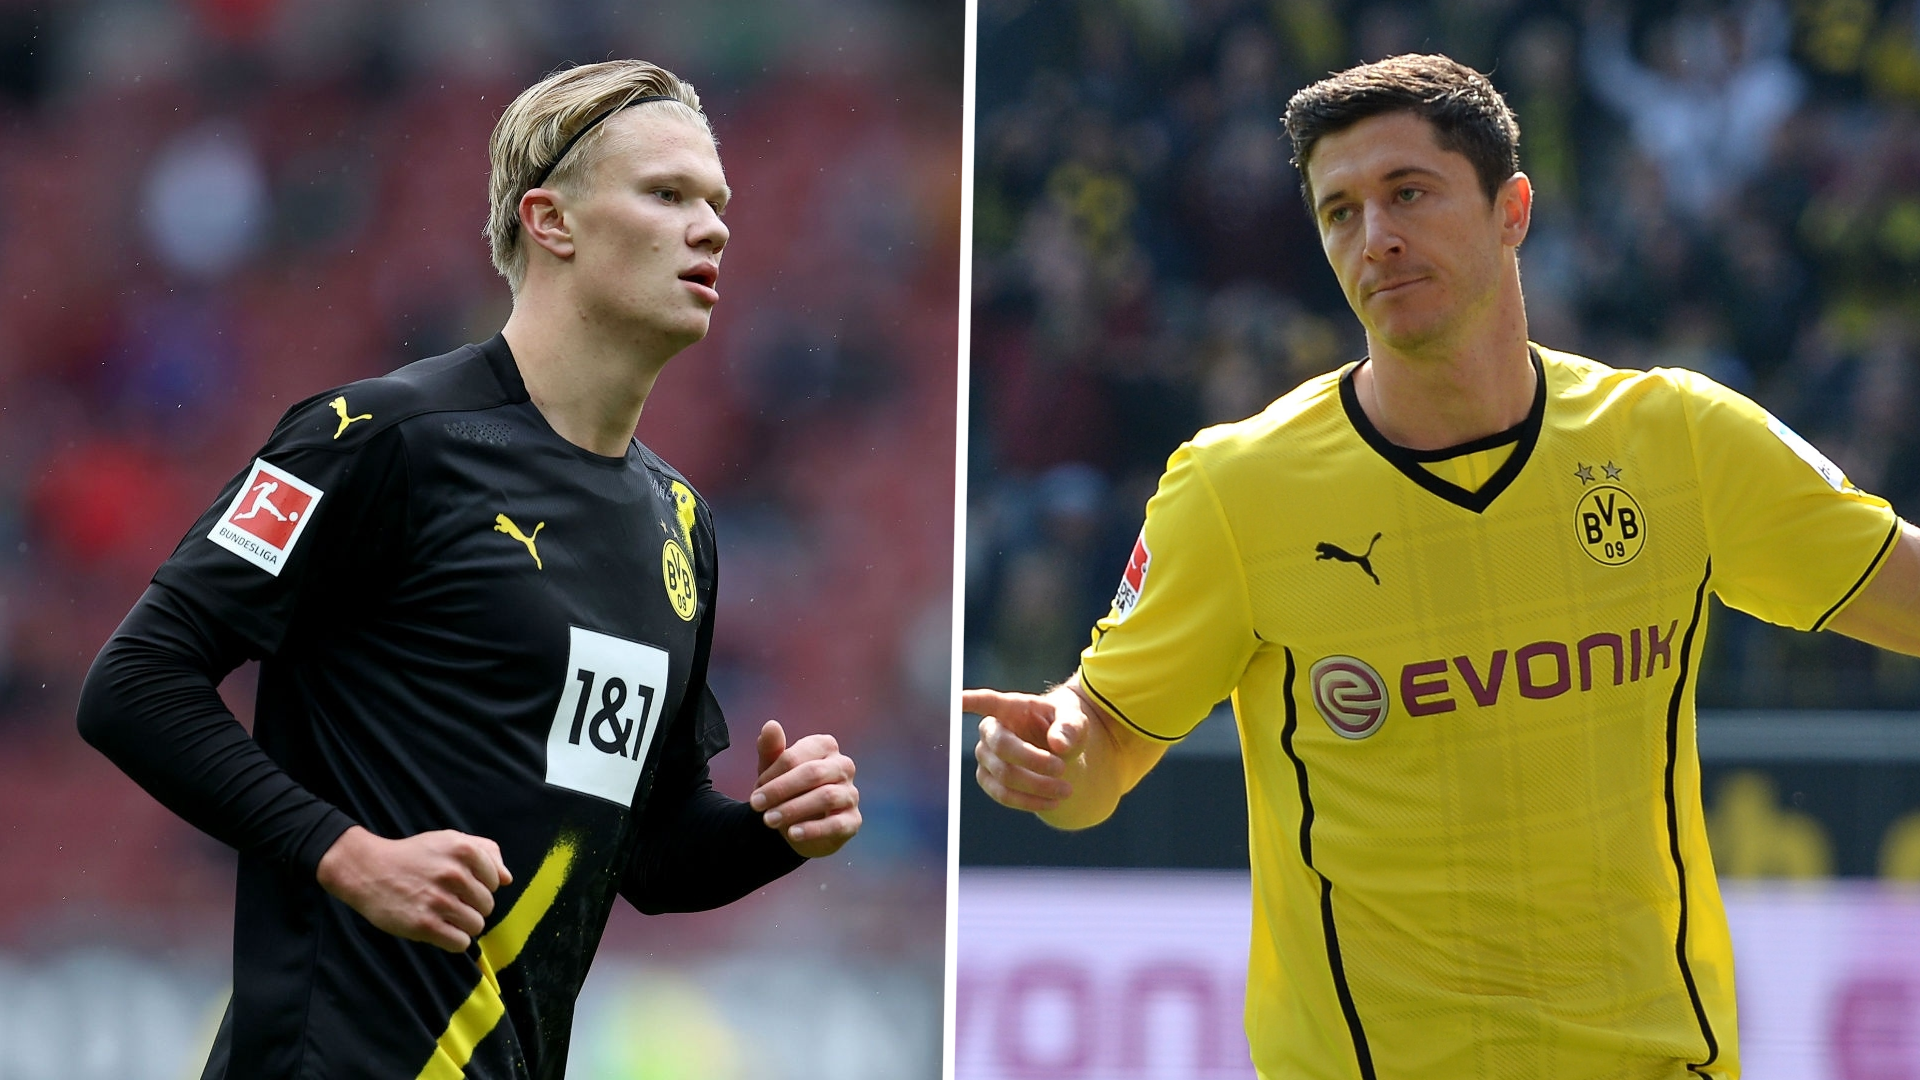 Bigger expectations on Haaland than there were on Lewandowski at Dortmund, claims ex-BVB captain Kehl